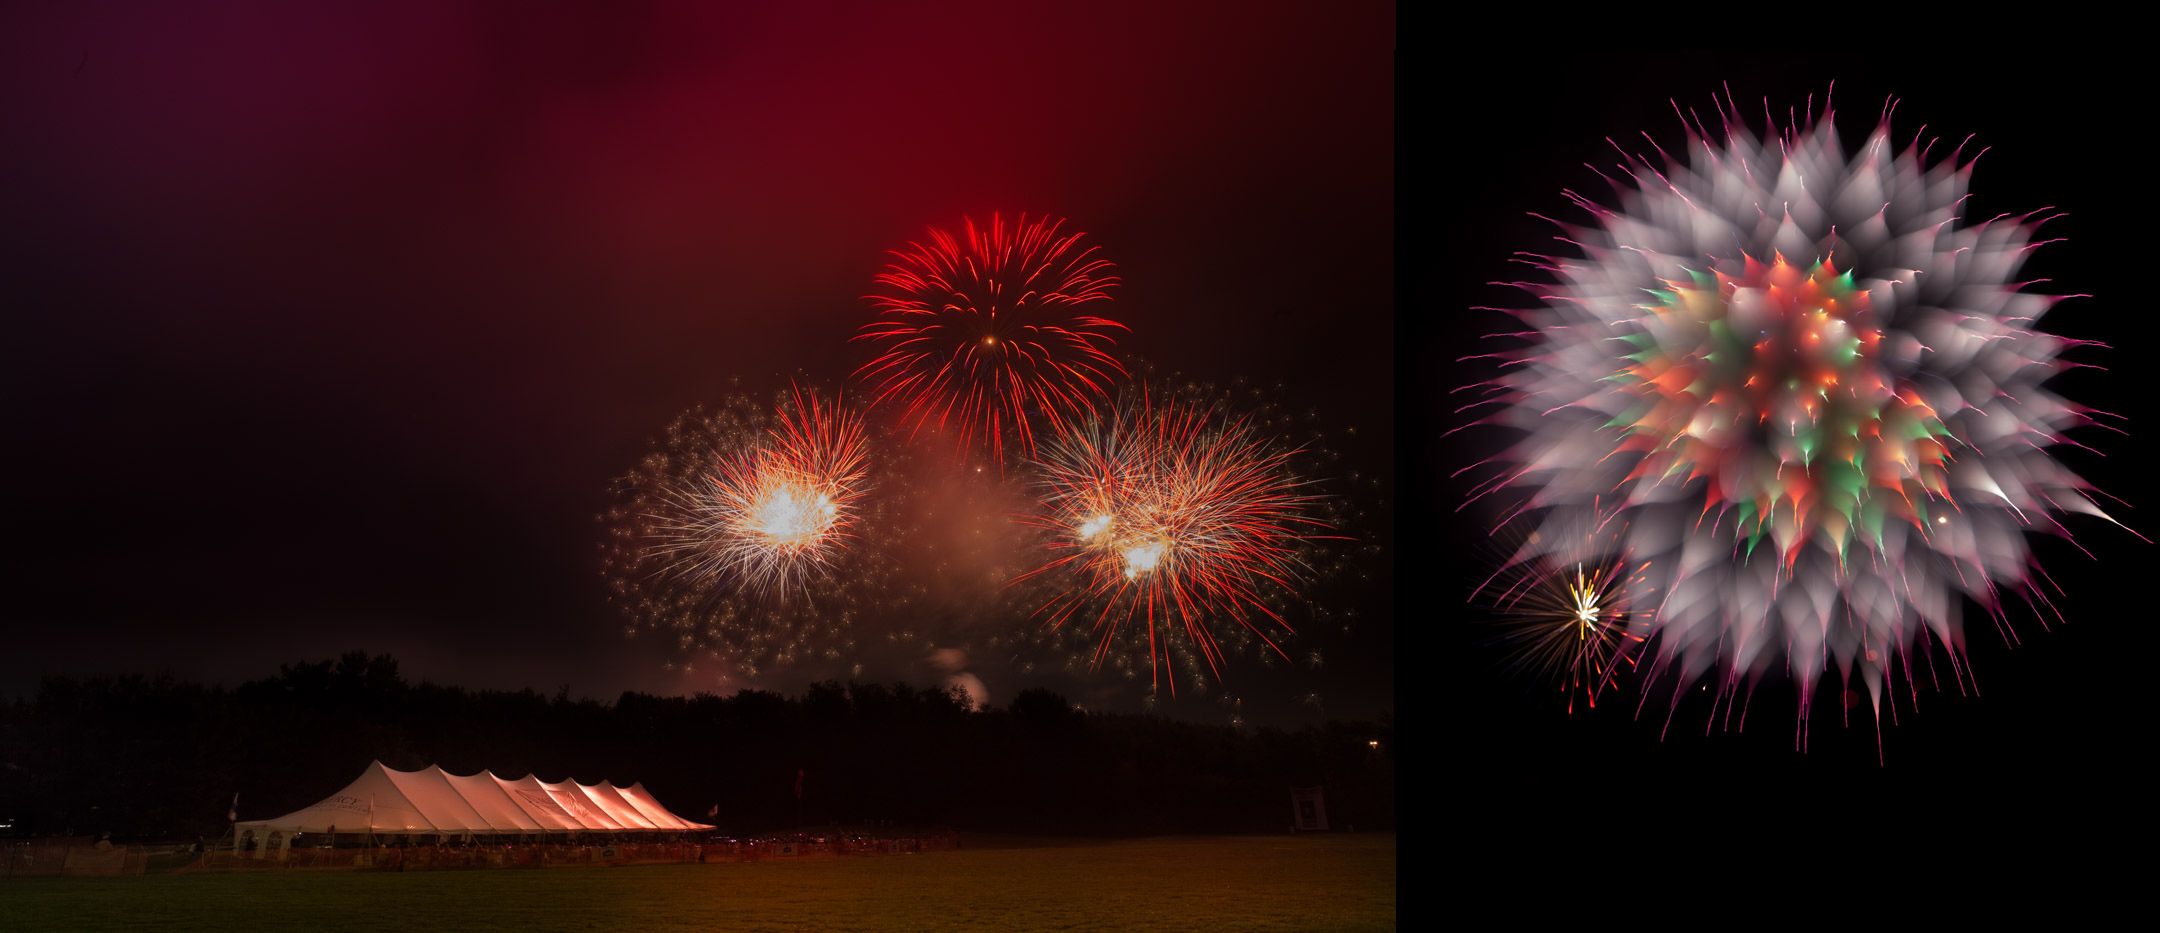 A more traditional fireworks photo (right) and a trick of focus fireworks shot (left)